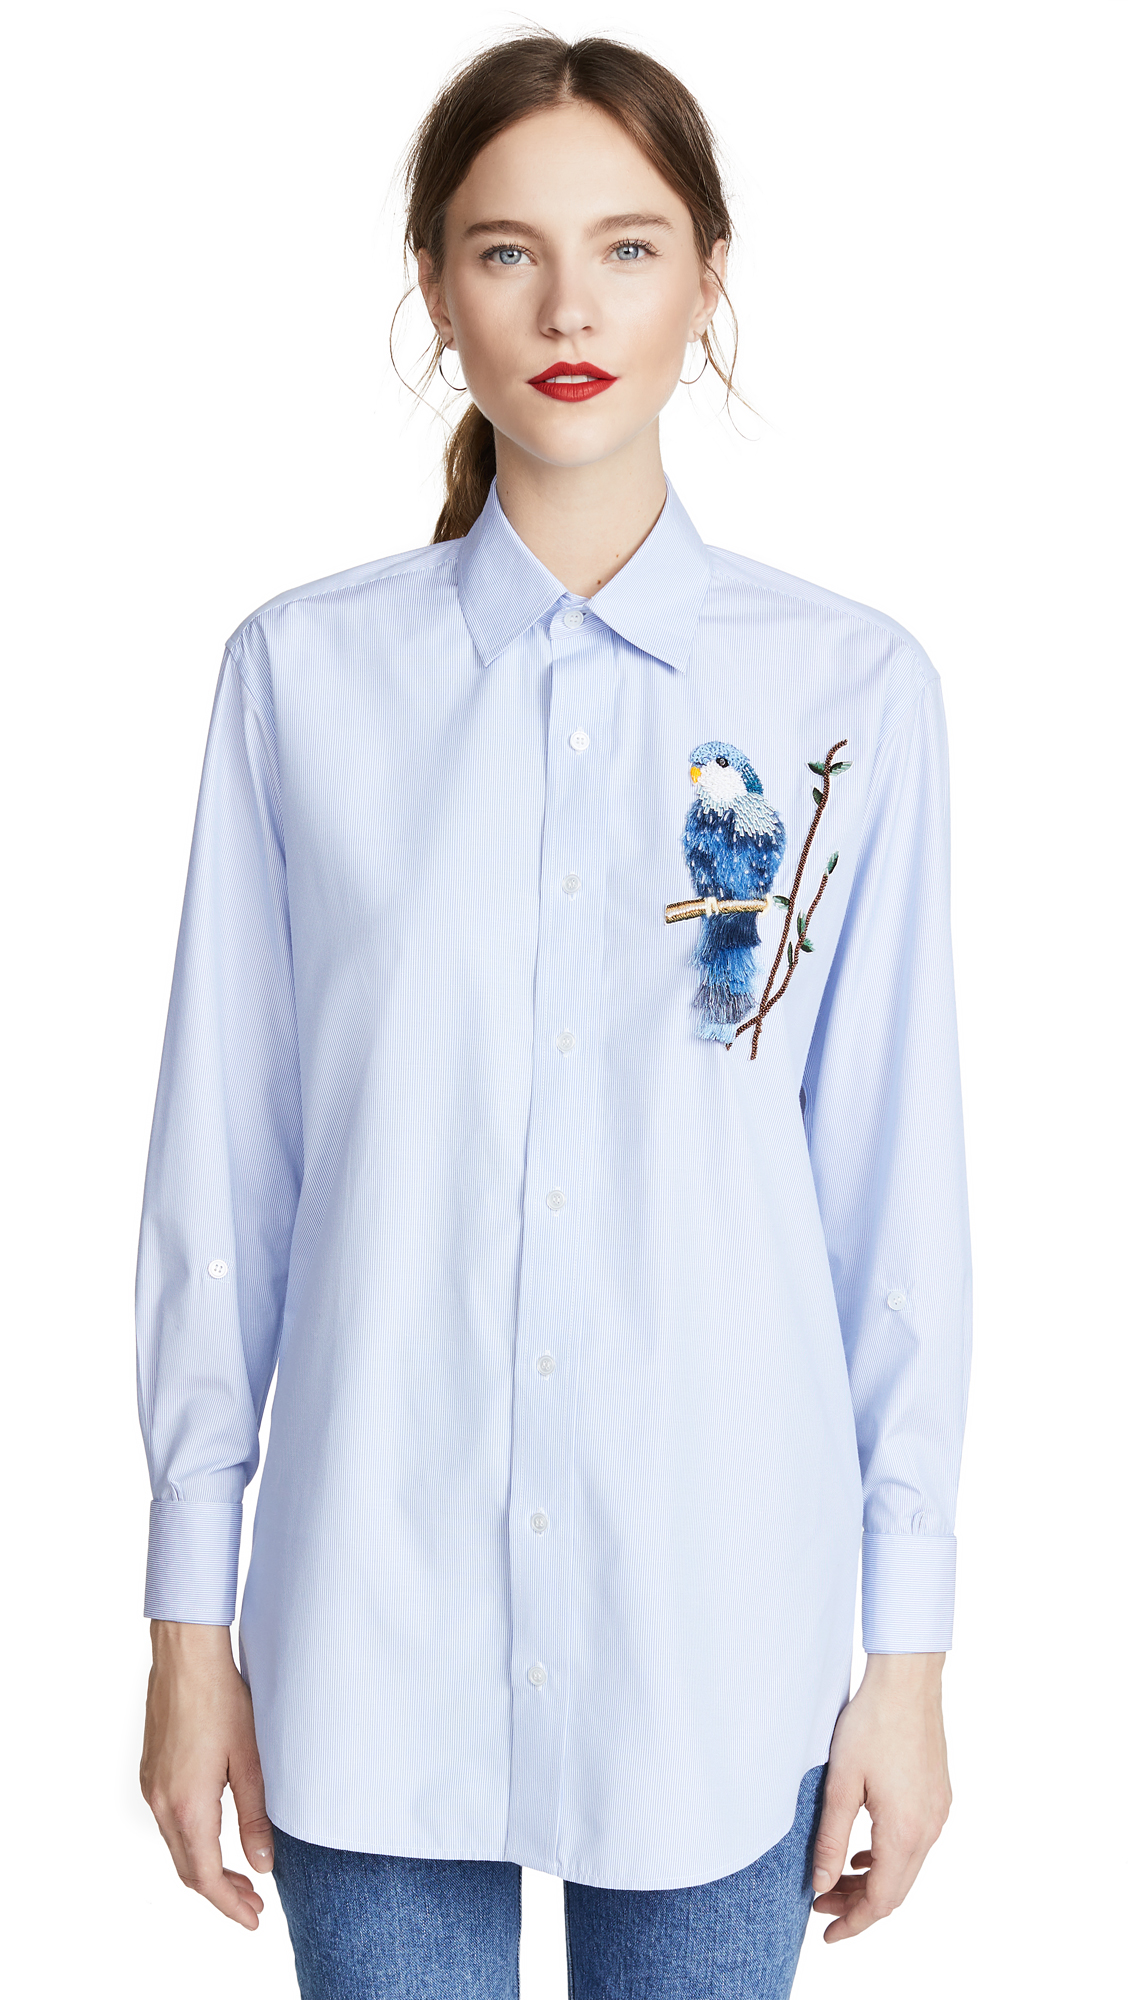 Anya Hindmarch Beach Shirt